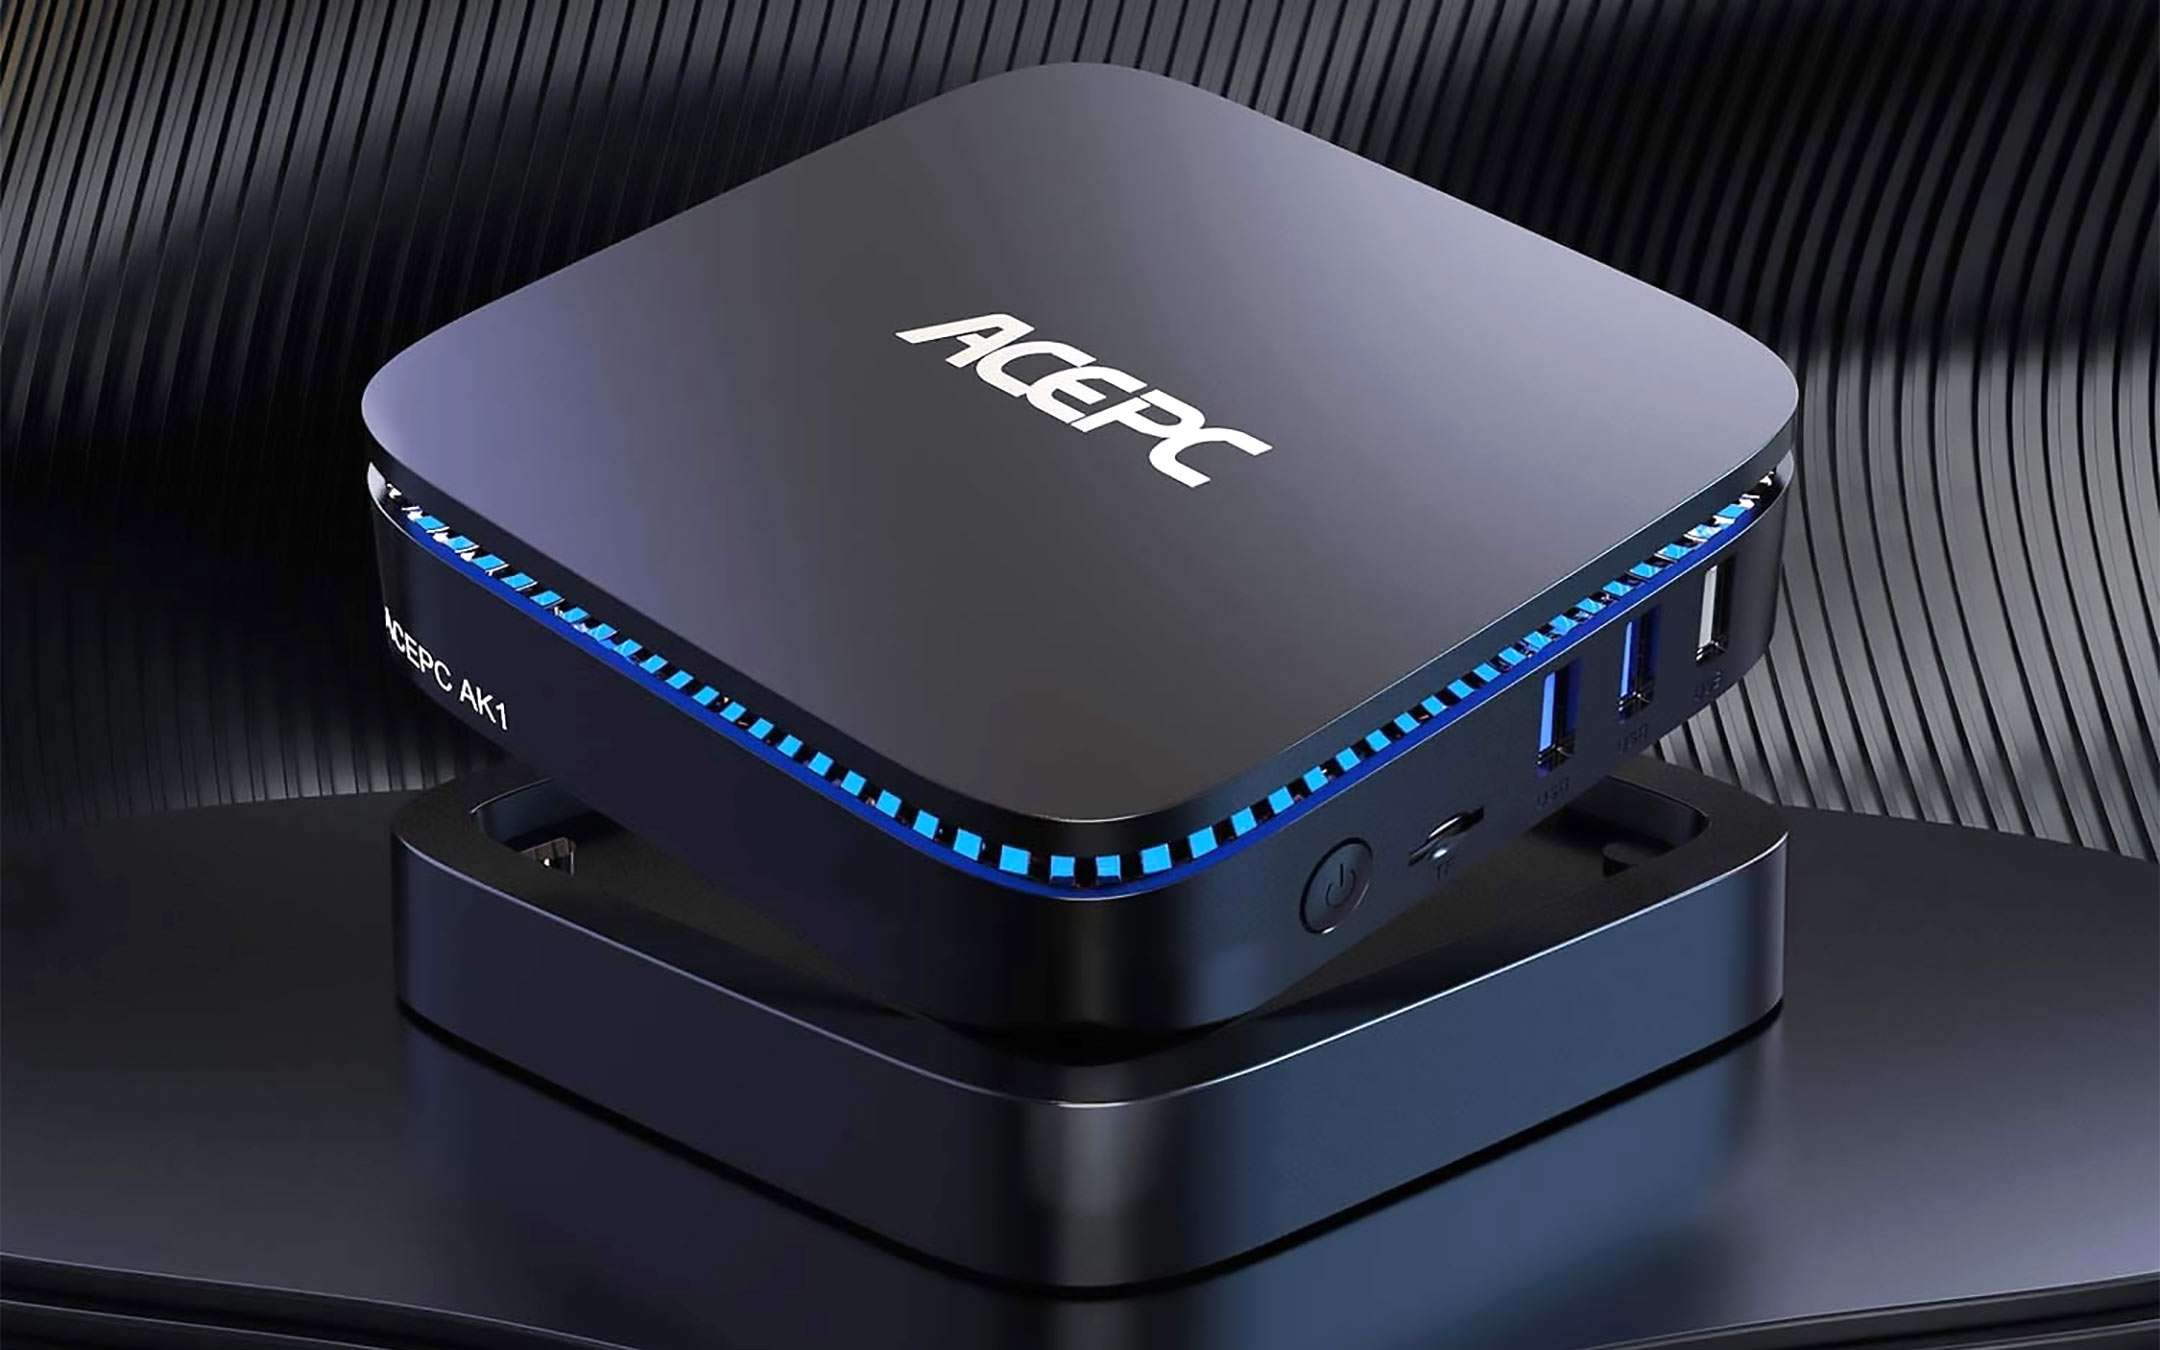 ACEPC AK1 Mini PC: power and elegance at an incredible price!